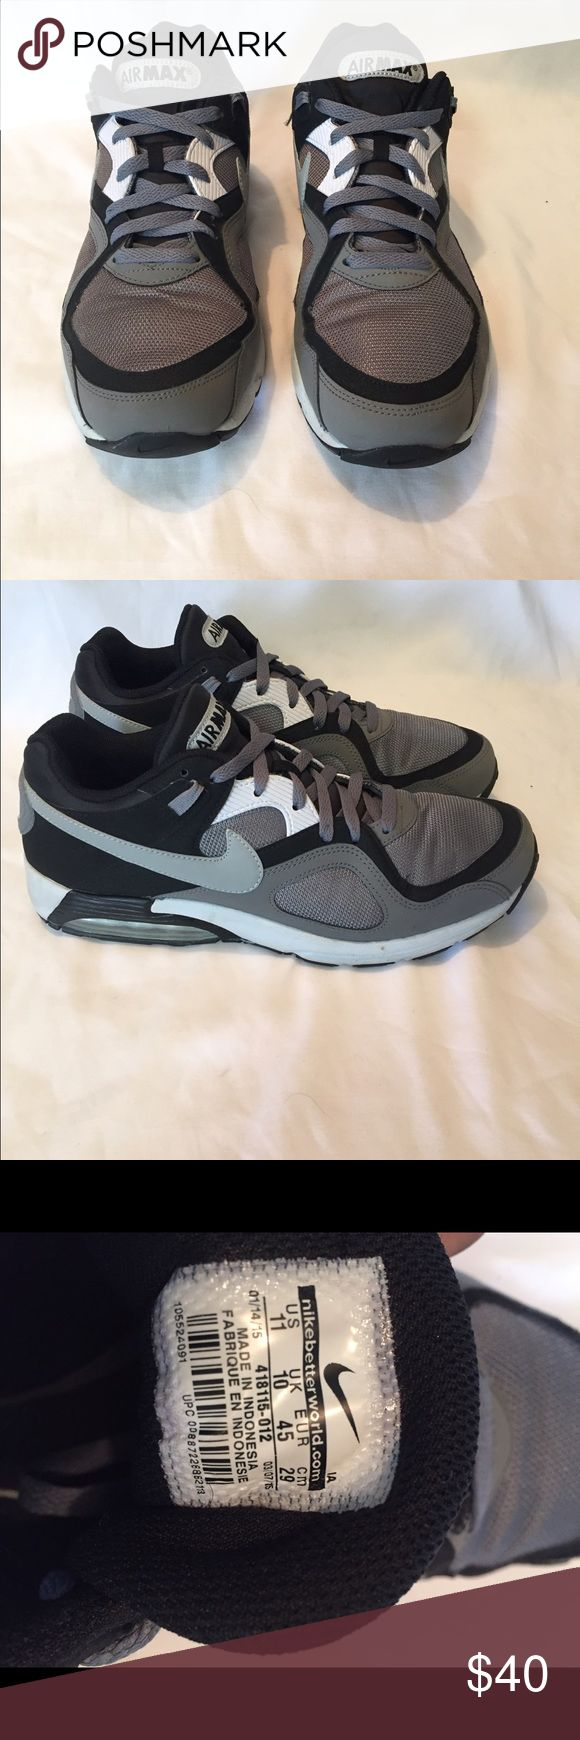 Air max sneakers Air max sneakers in great condition used a handful of times Nike Shoes Sneakers